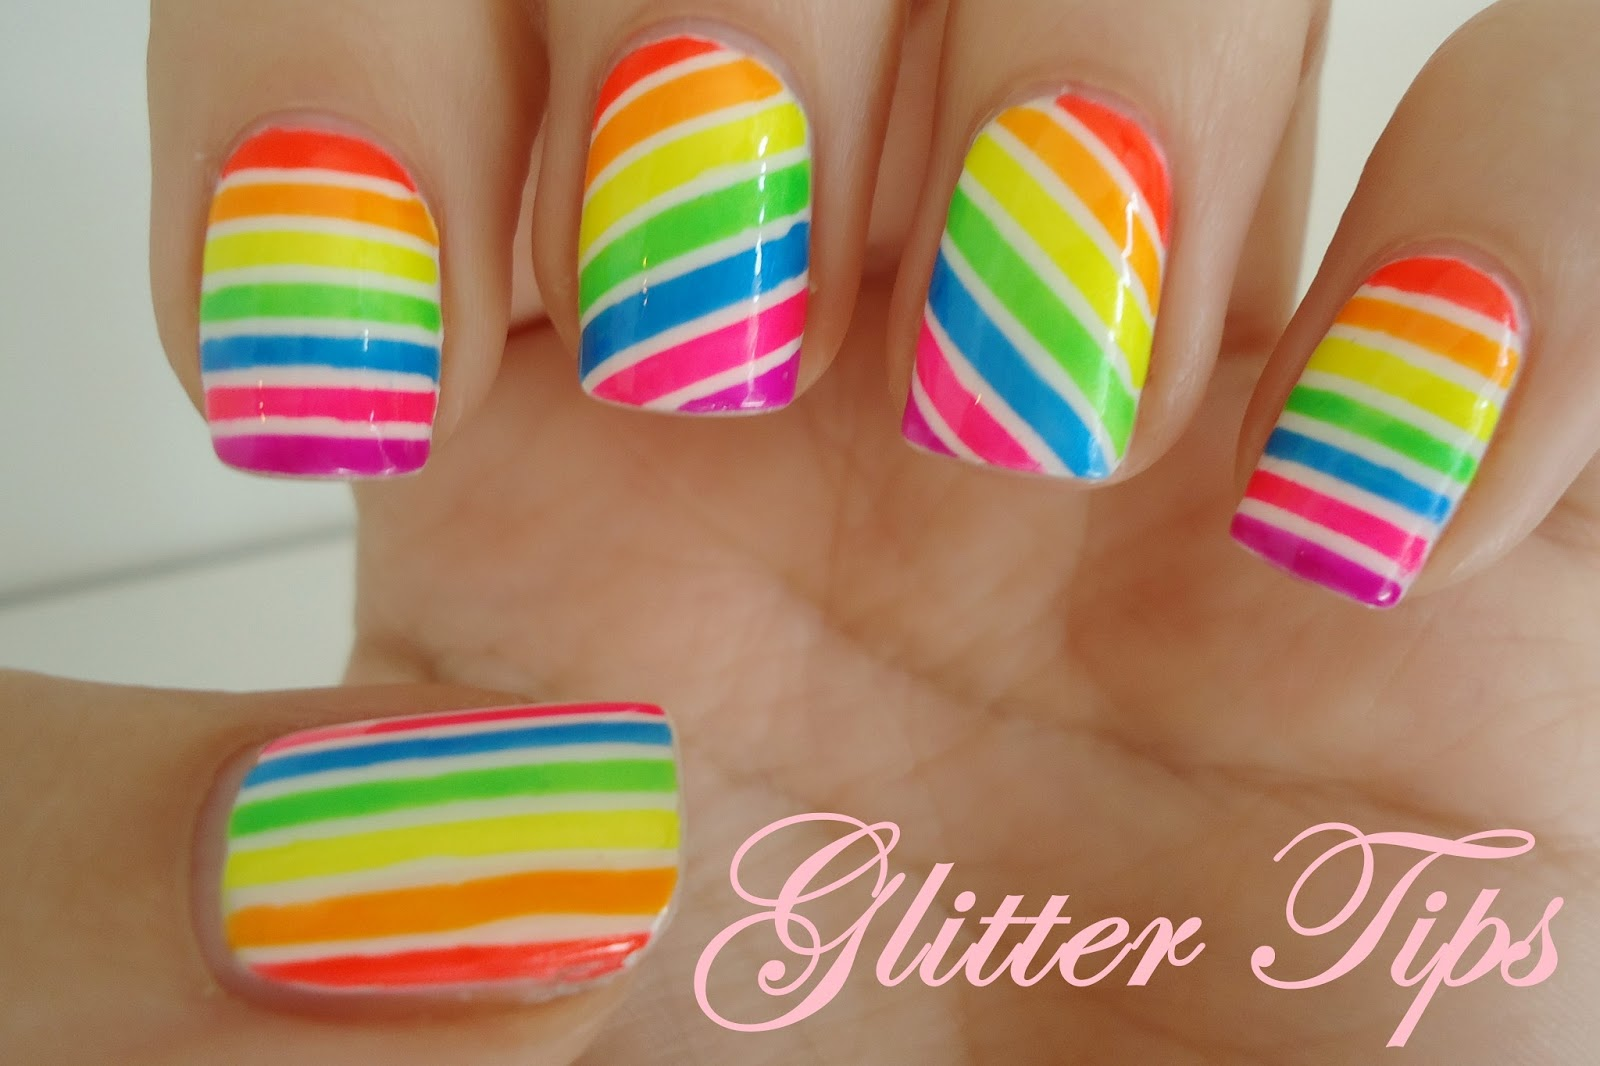 Glitter tips neon candy stripes nail art neon candy stripes nail art prinsesfo Image collections